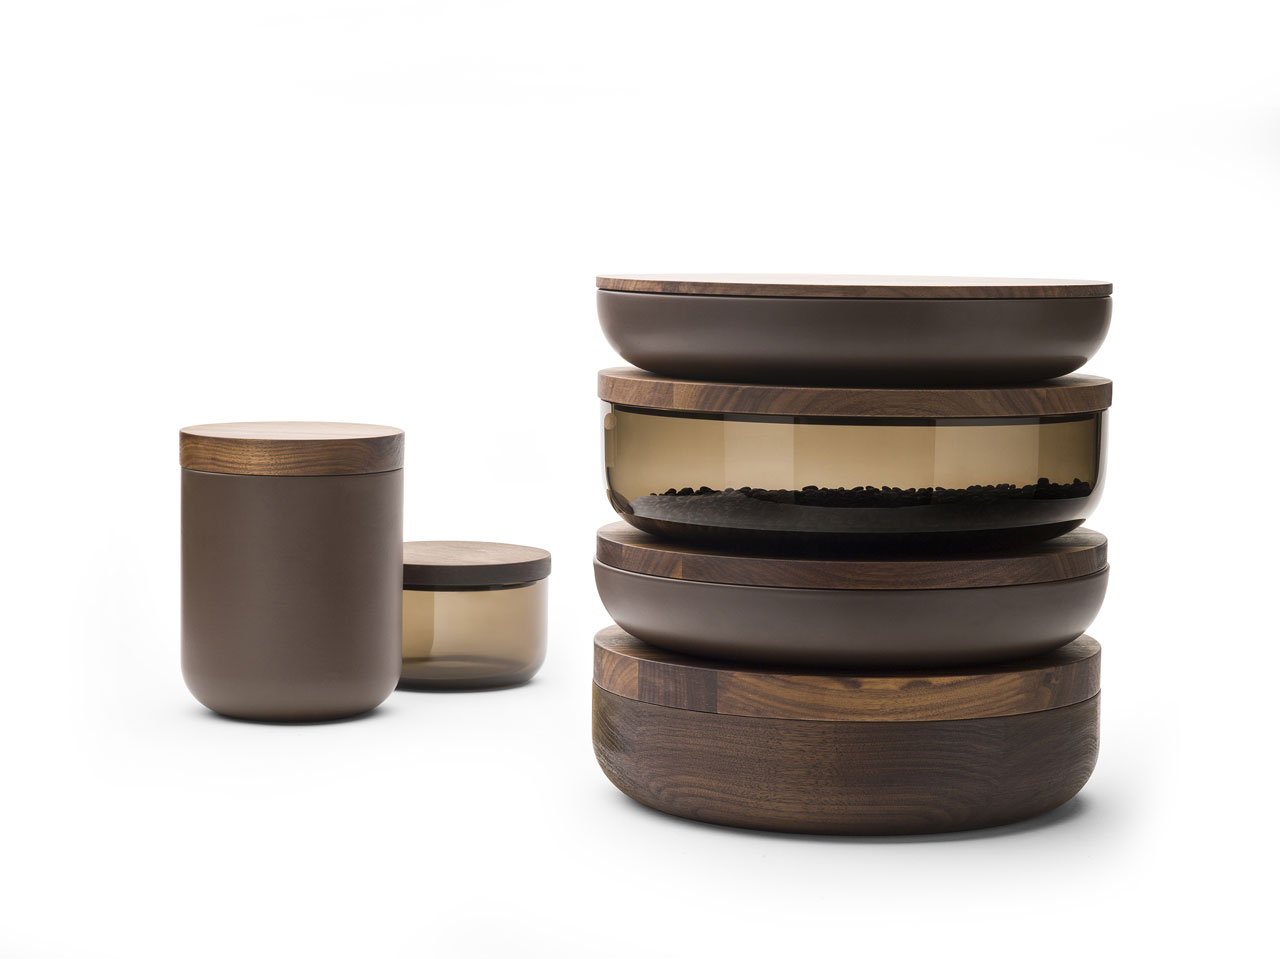 Pottery byVincent van Duysen for When Objects Work.